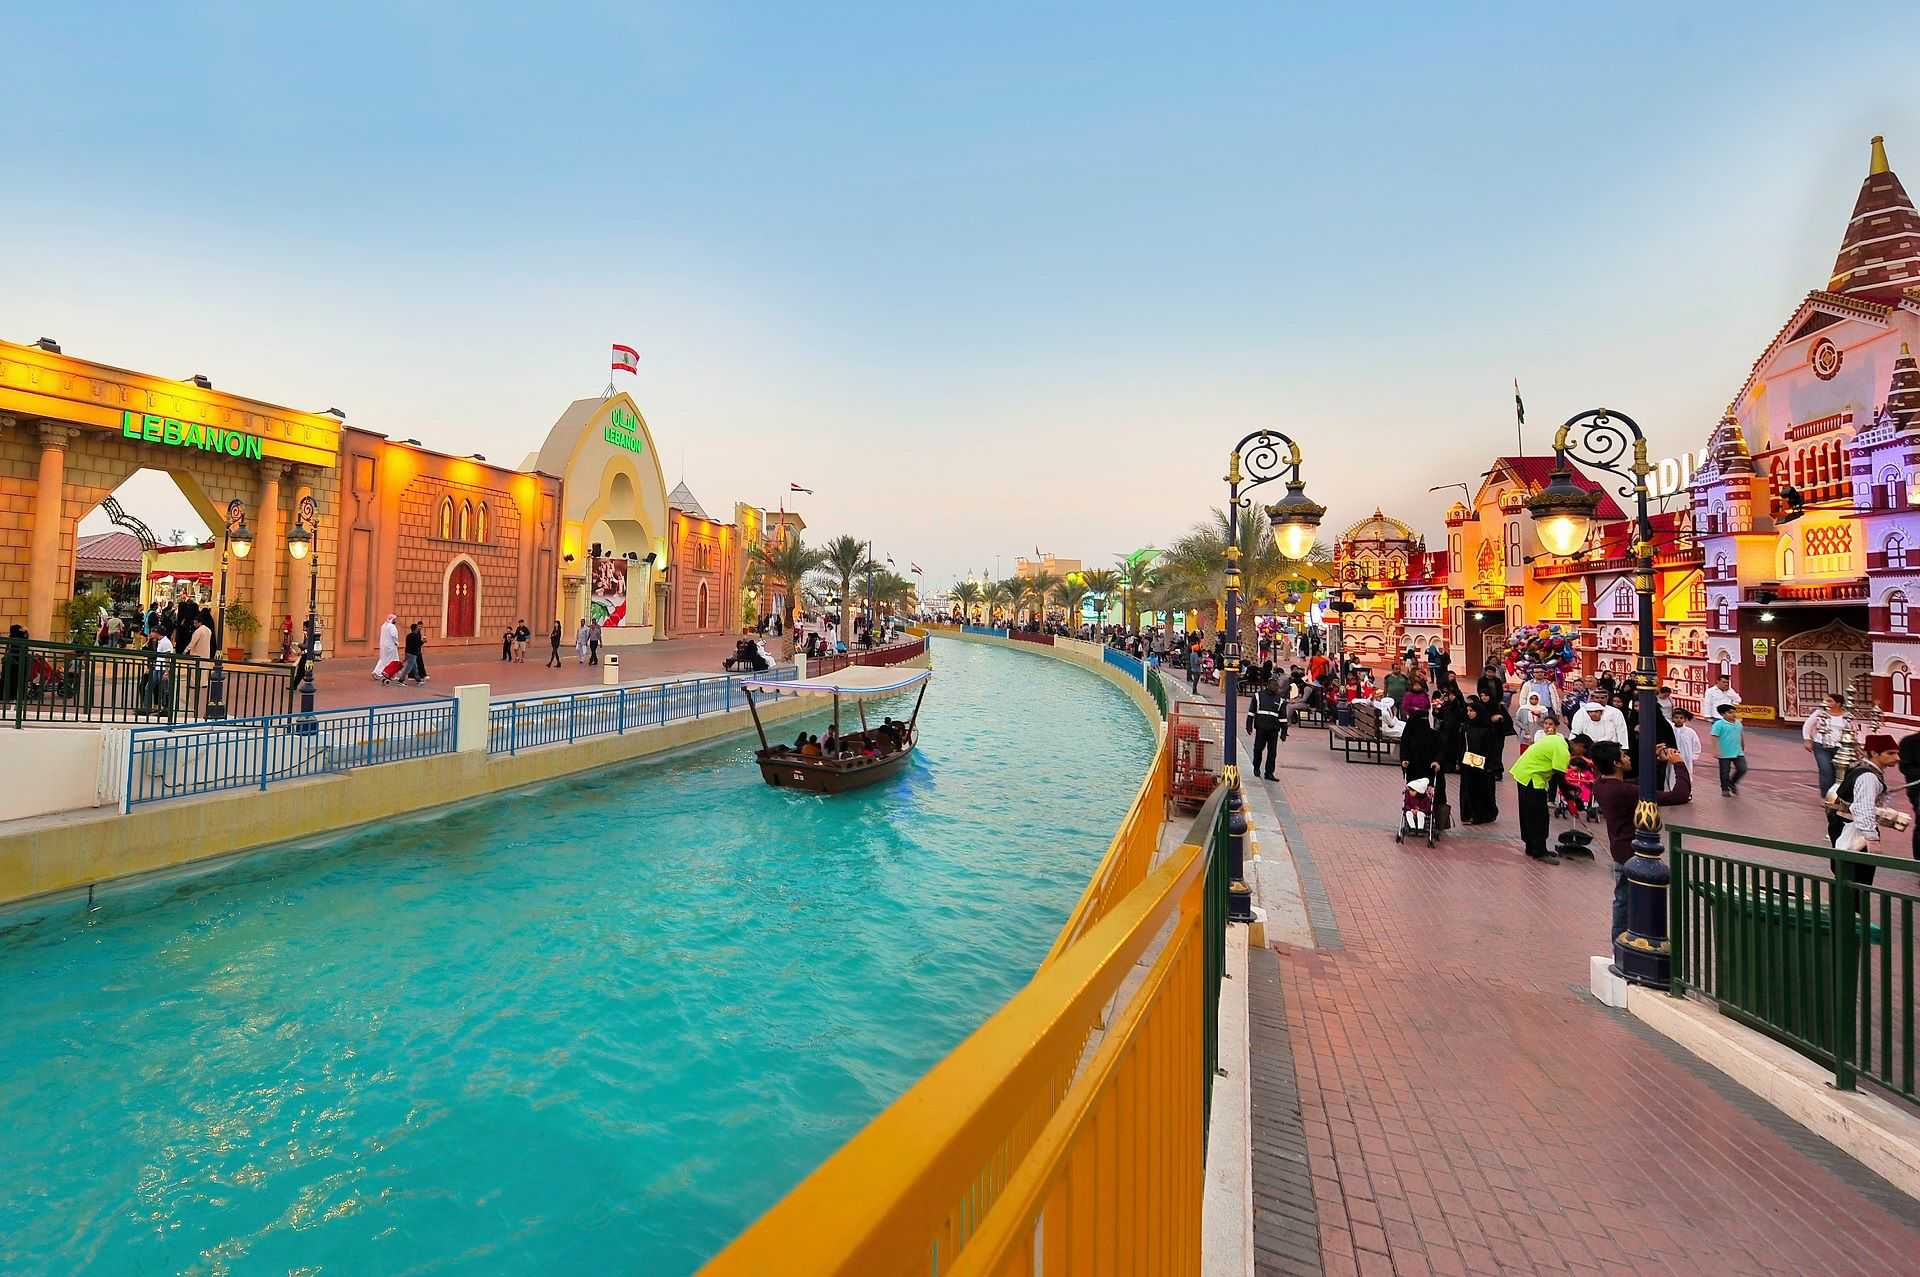 dubai-global-village-2016-29